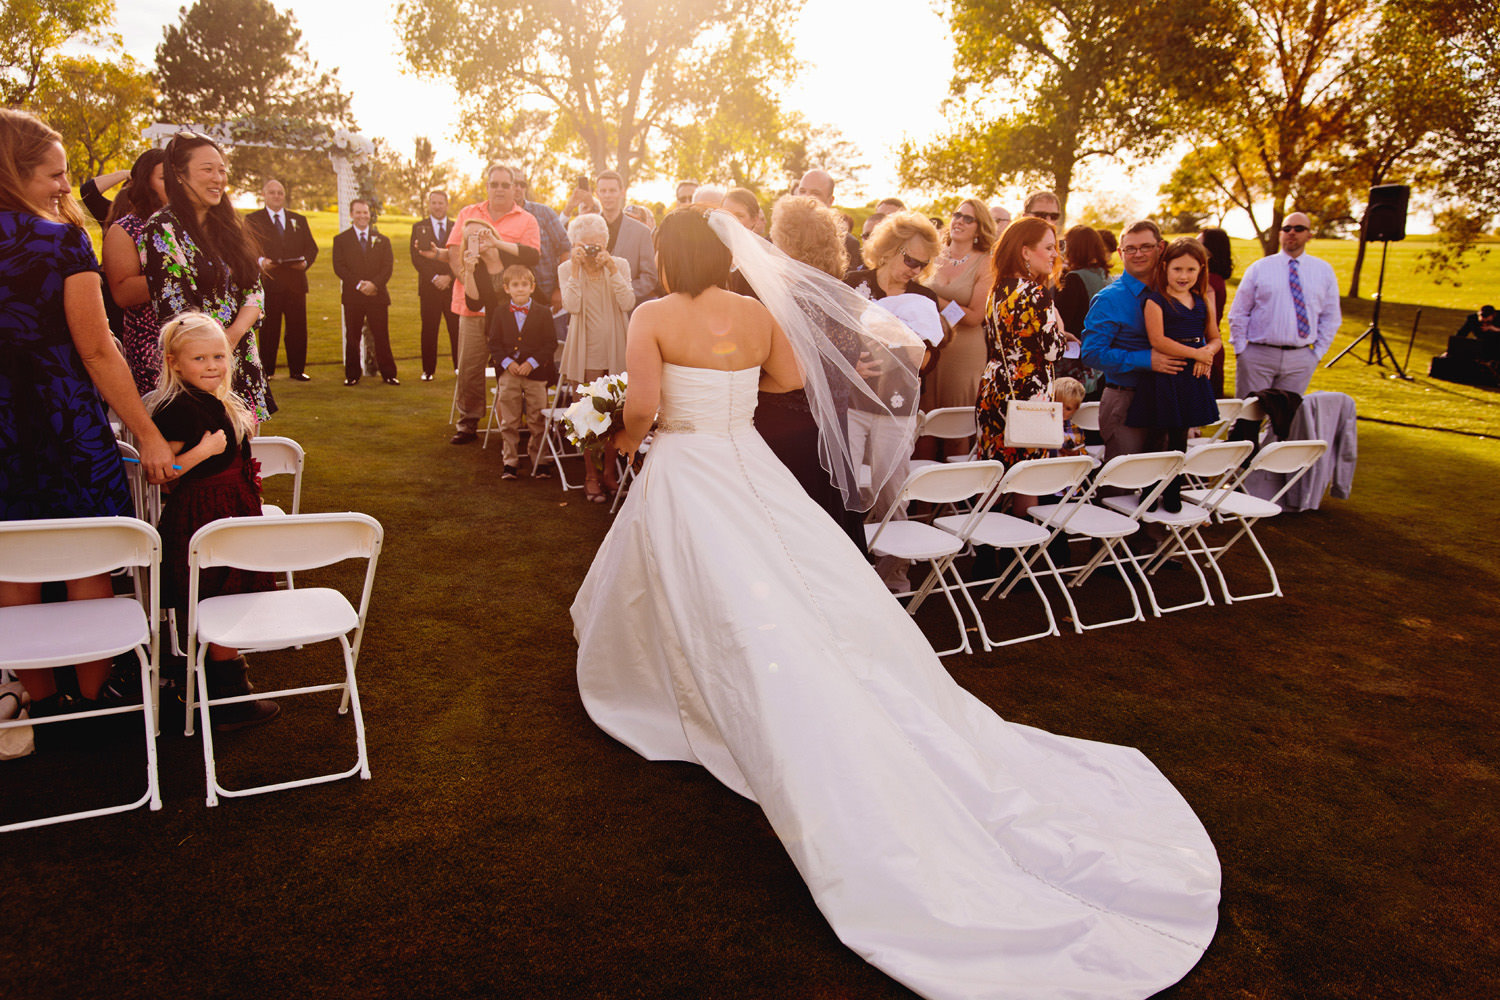 centennial-valley-country-club-wedding-tomKphoto-009.jpg